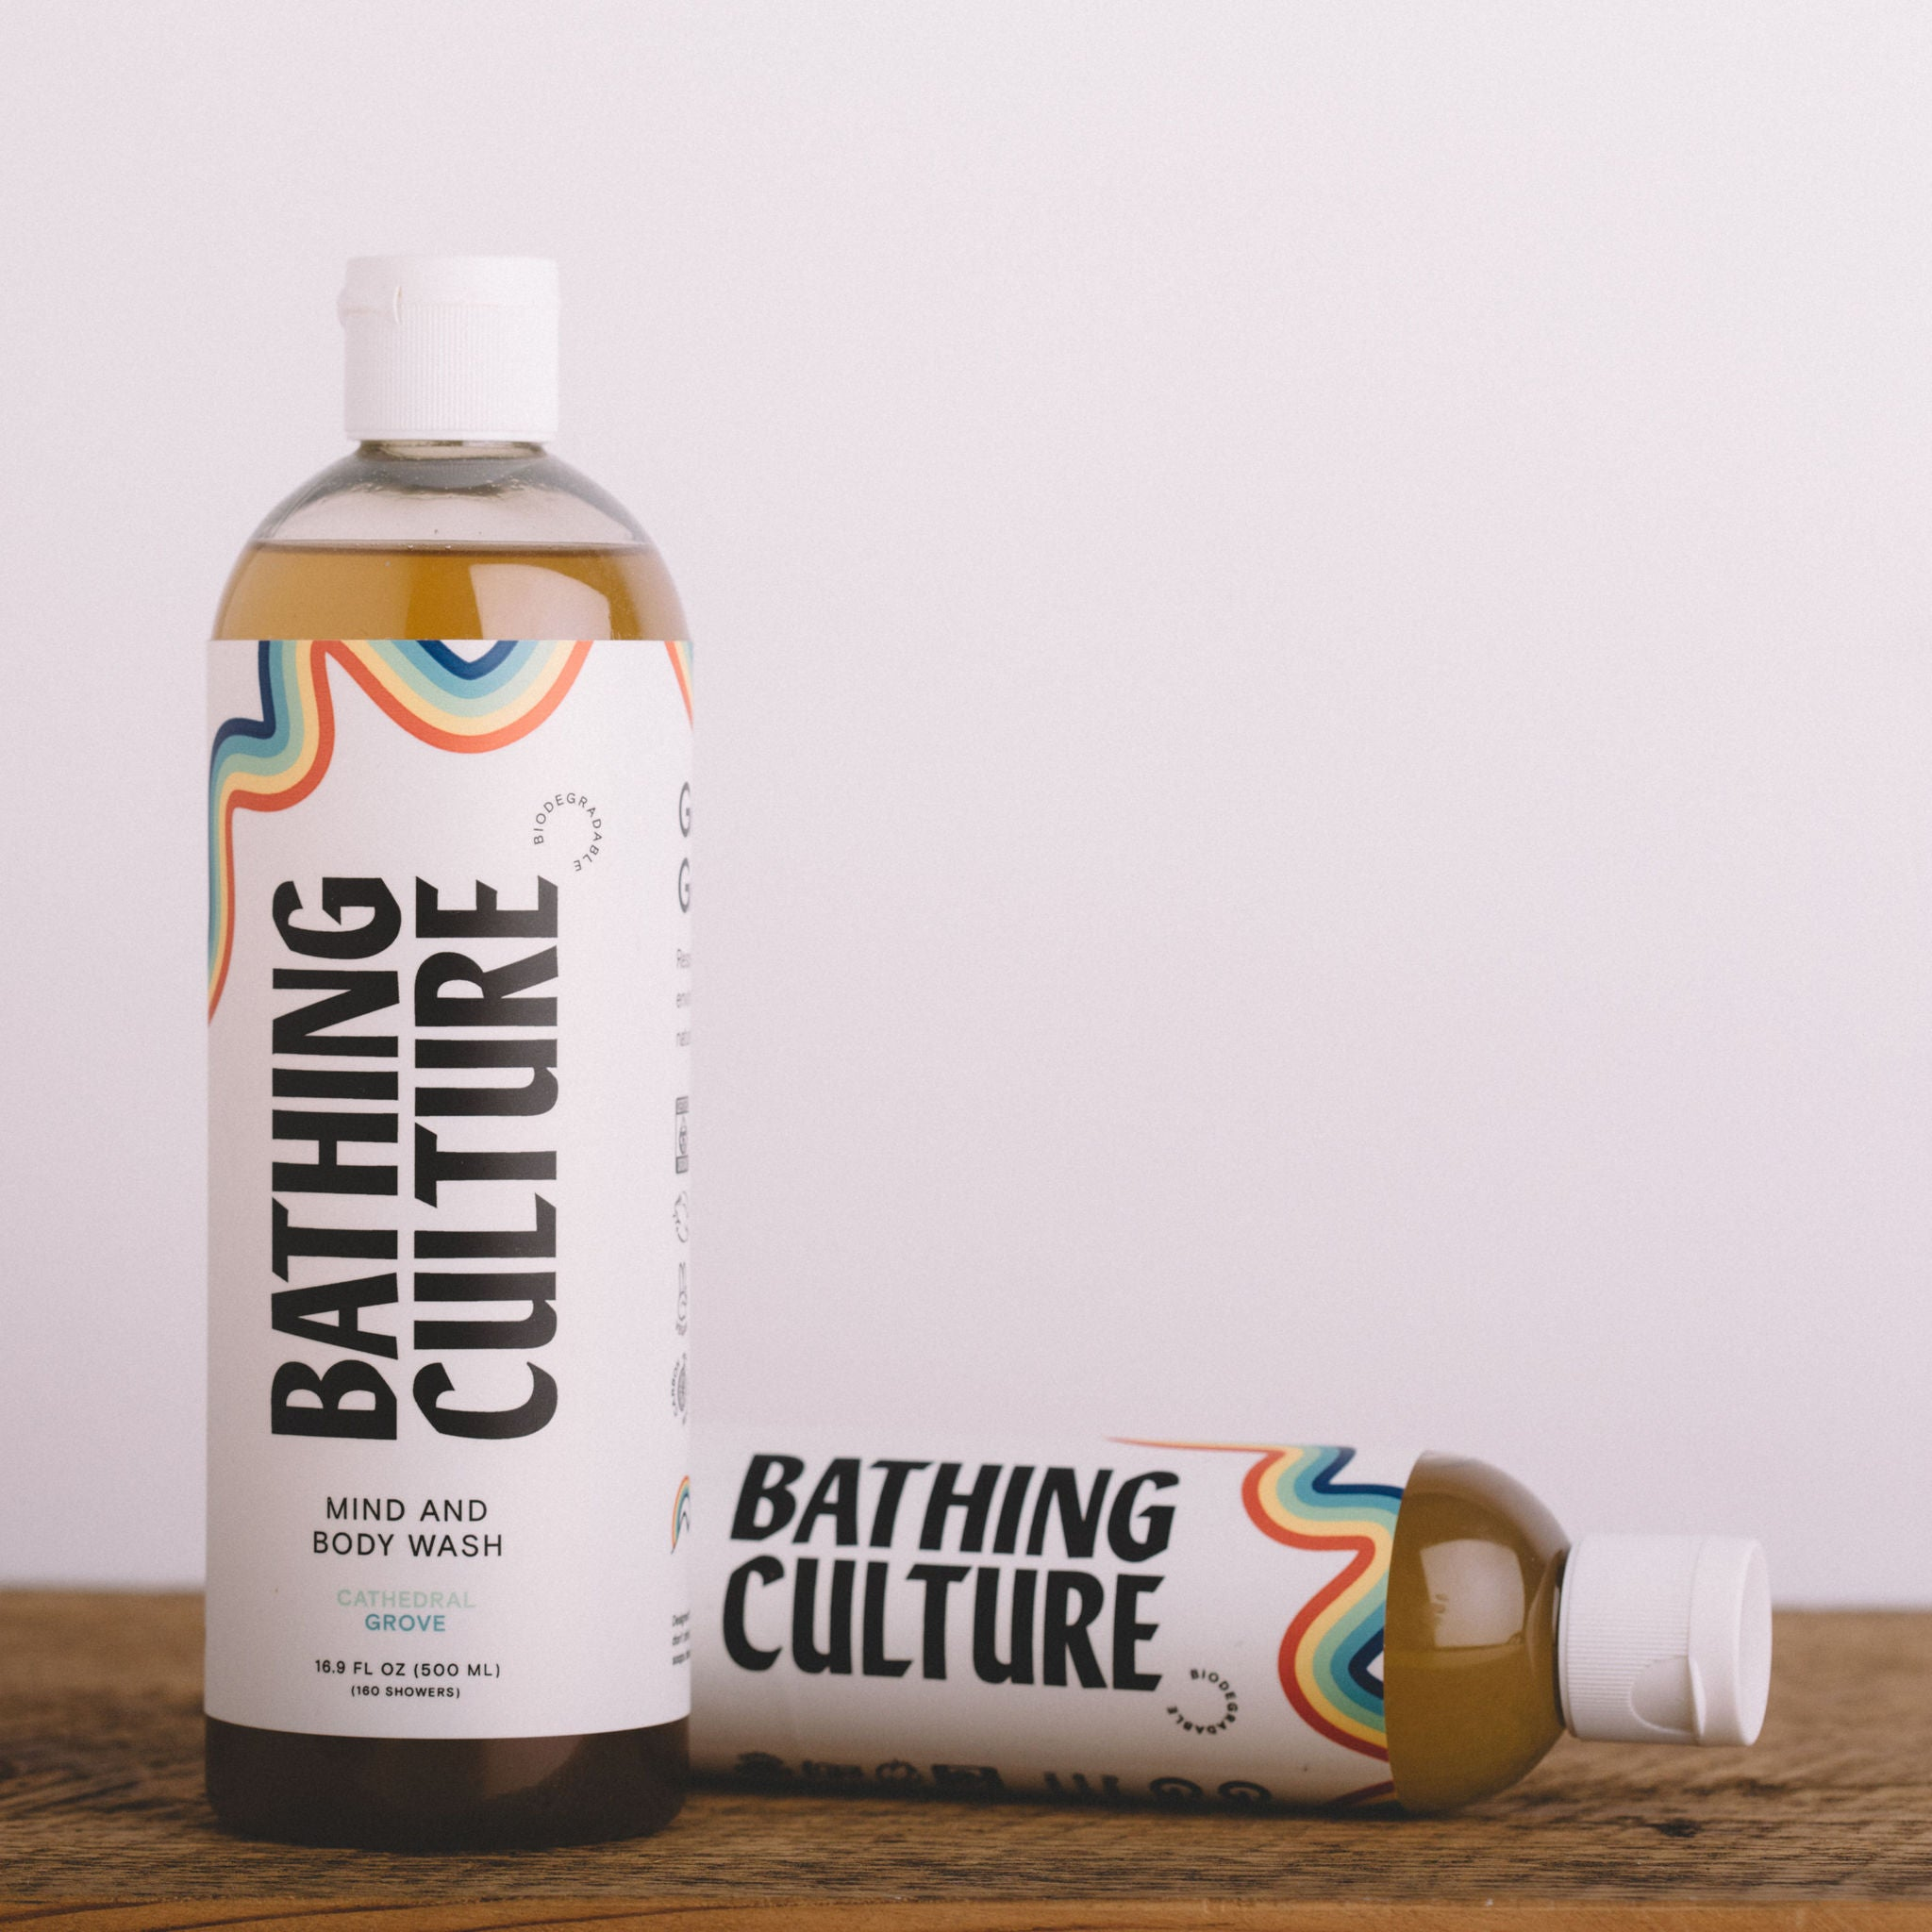 BATHING CULTURE || BODY WASH